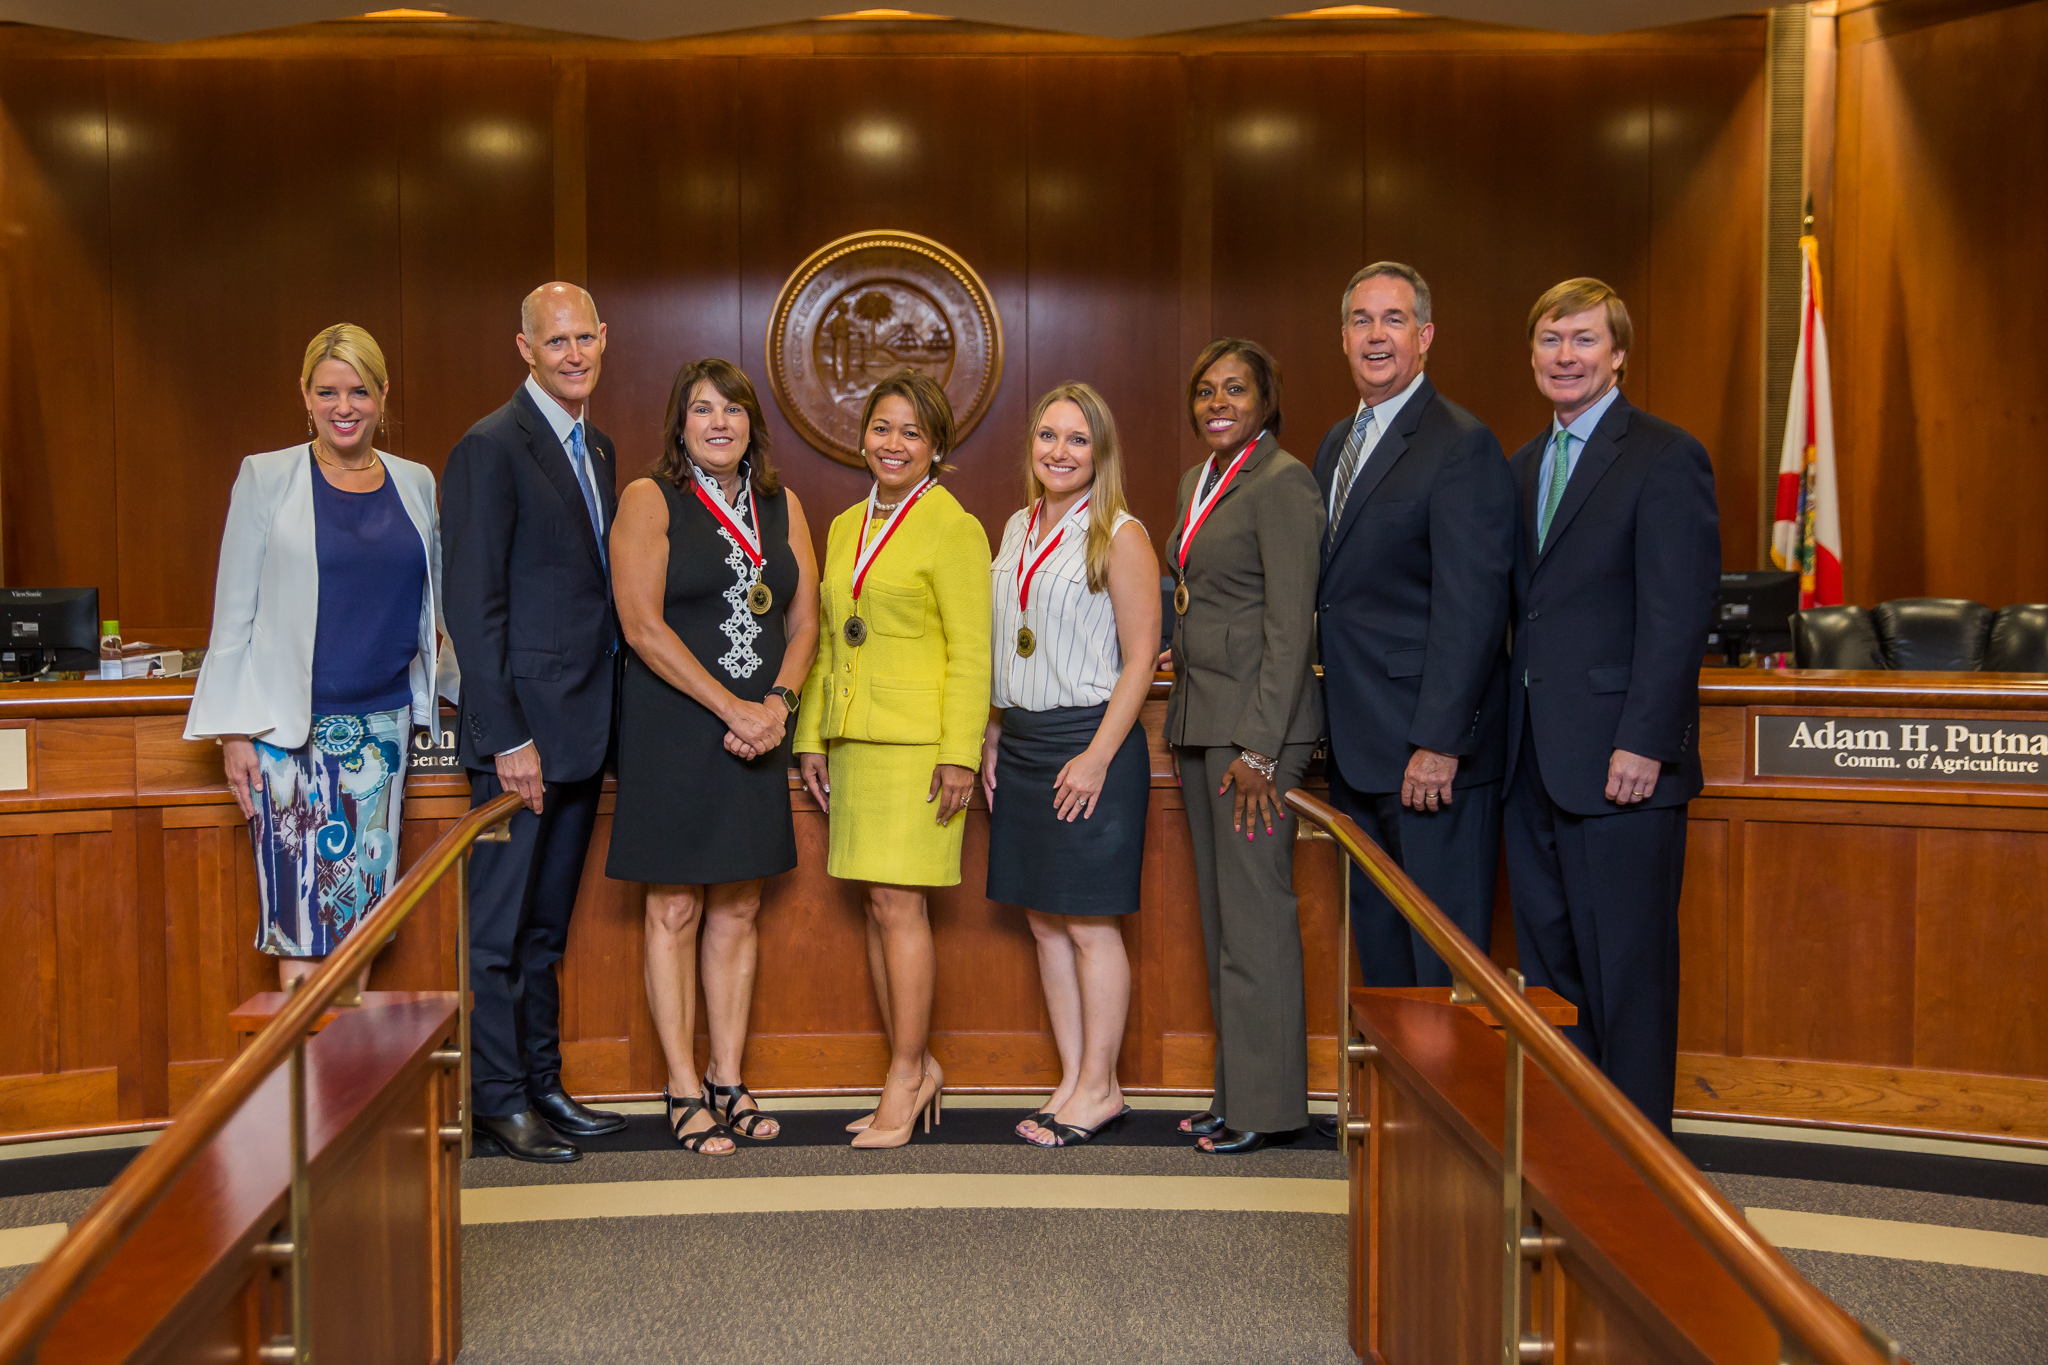 Today, During A Meeting Of The Florida Cabinet, Governor Rick Scott  Recognized Four Outstanding Educators With The Governoru0027s Shine Award.